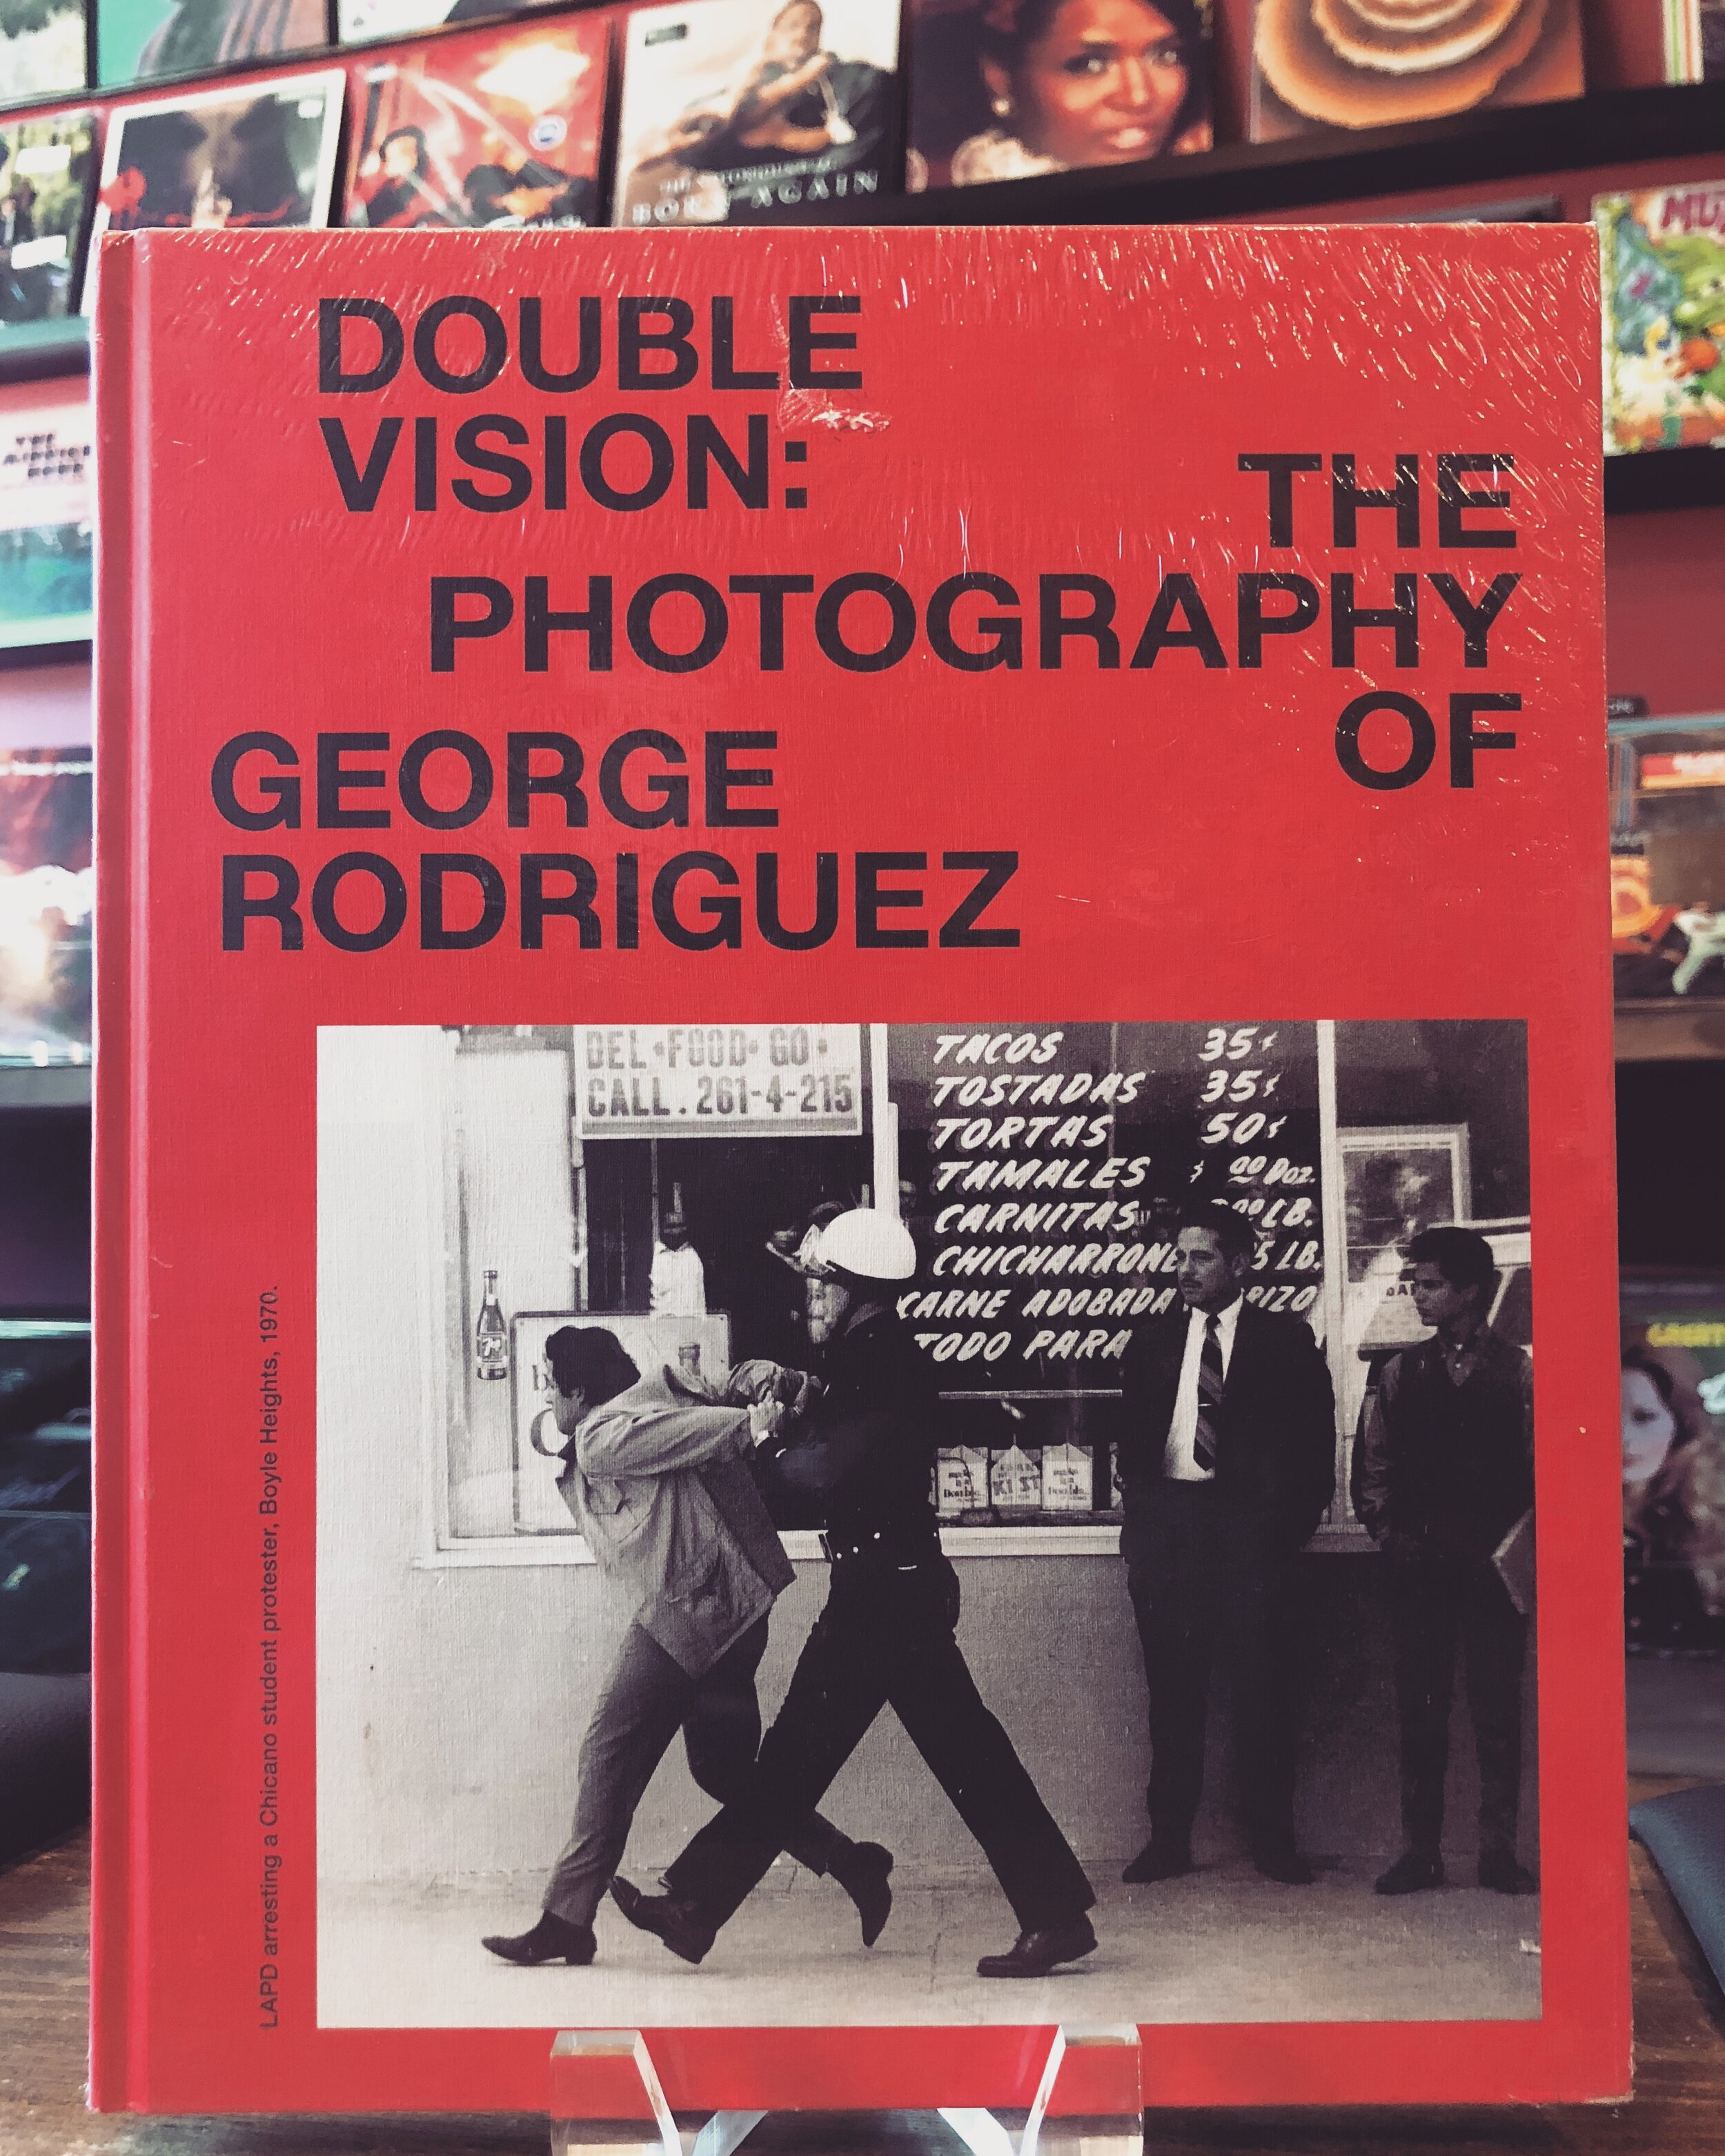 #ArtformBooks:George RodriguezDouble Vision - George Rodriguez touches more than just the surface on true #LA culture from the past 40 years in this photography book #DoubleVision. And, now you can see these images come to life at #ELAC's Vincent Price Arts Museum from now until the end of February!